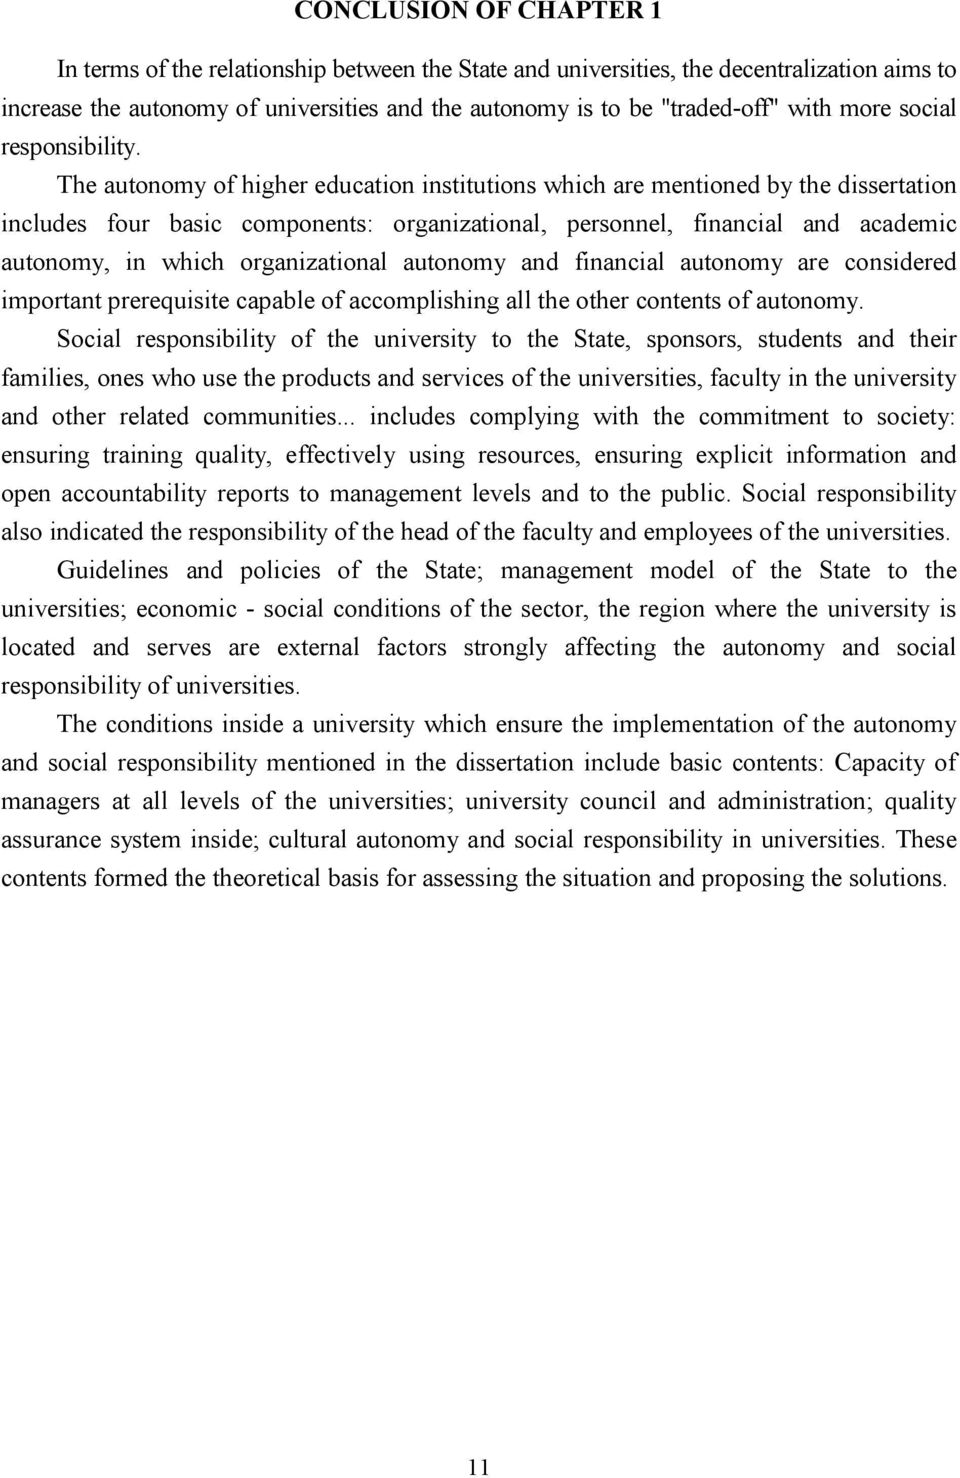 The autonomy of higher education institutions which are mentioned by the dissertation includes four basic components: organizational, personnel, financial and academic autonomy, in which